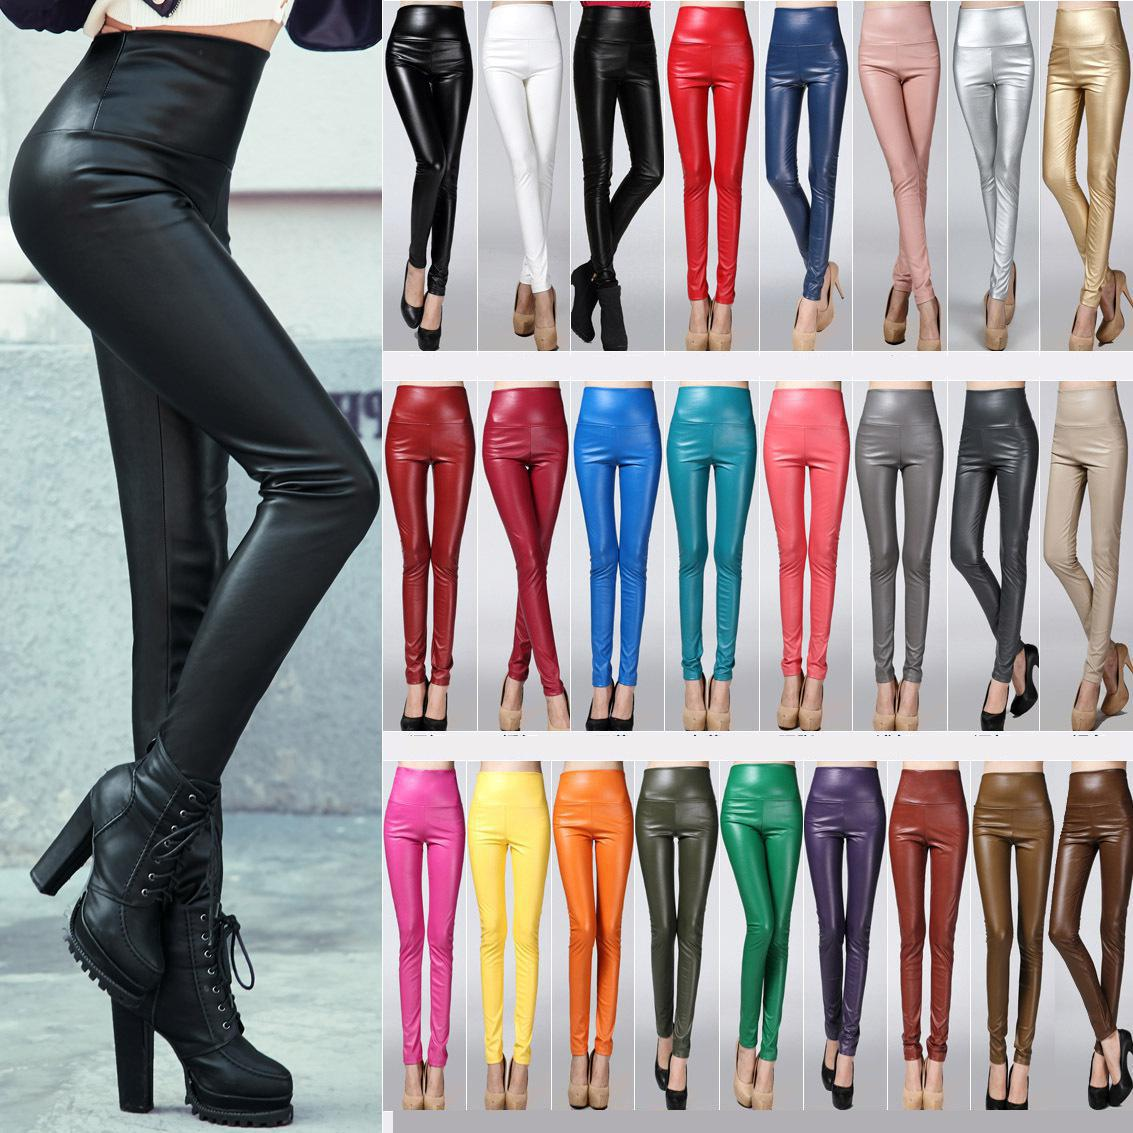 2020 Available Winter And Autumn New Arrival Leather Leggings High Waist Woman Leggings High Quality Legging Femme Free Shipping